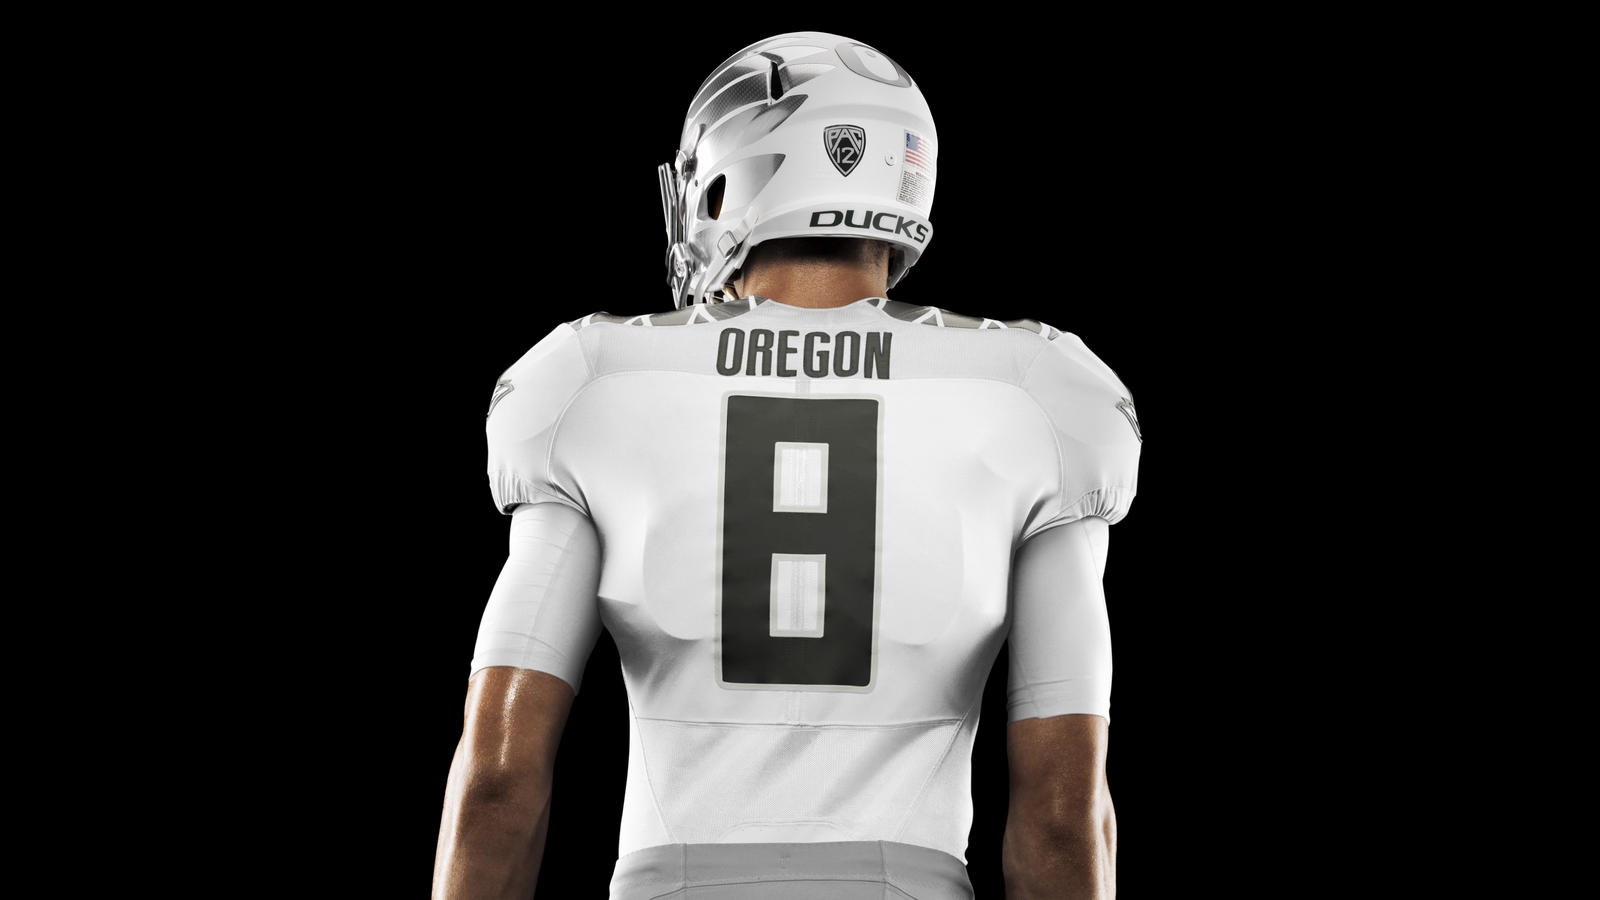 HO14_NFB_NCAA_Oregon_Uniform_439_V2_crop_1_HR